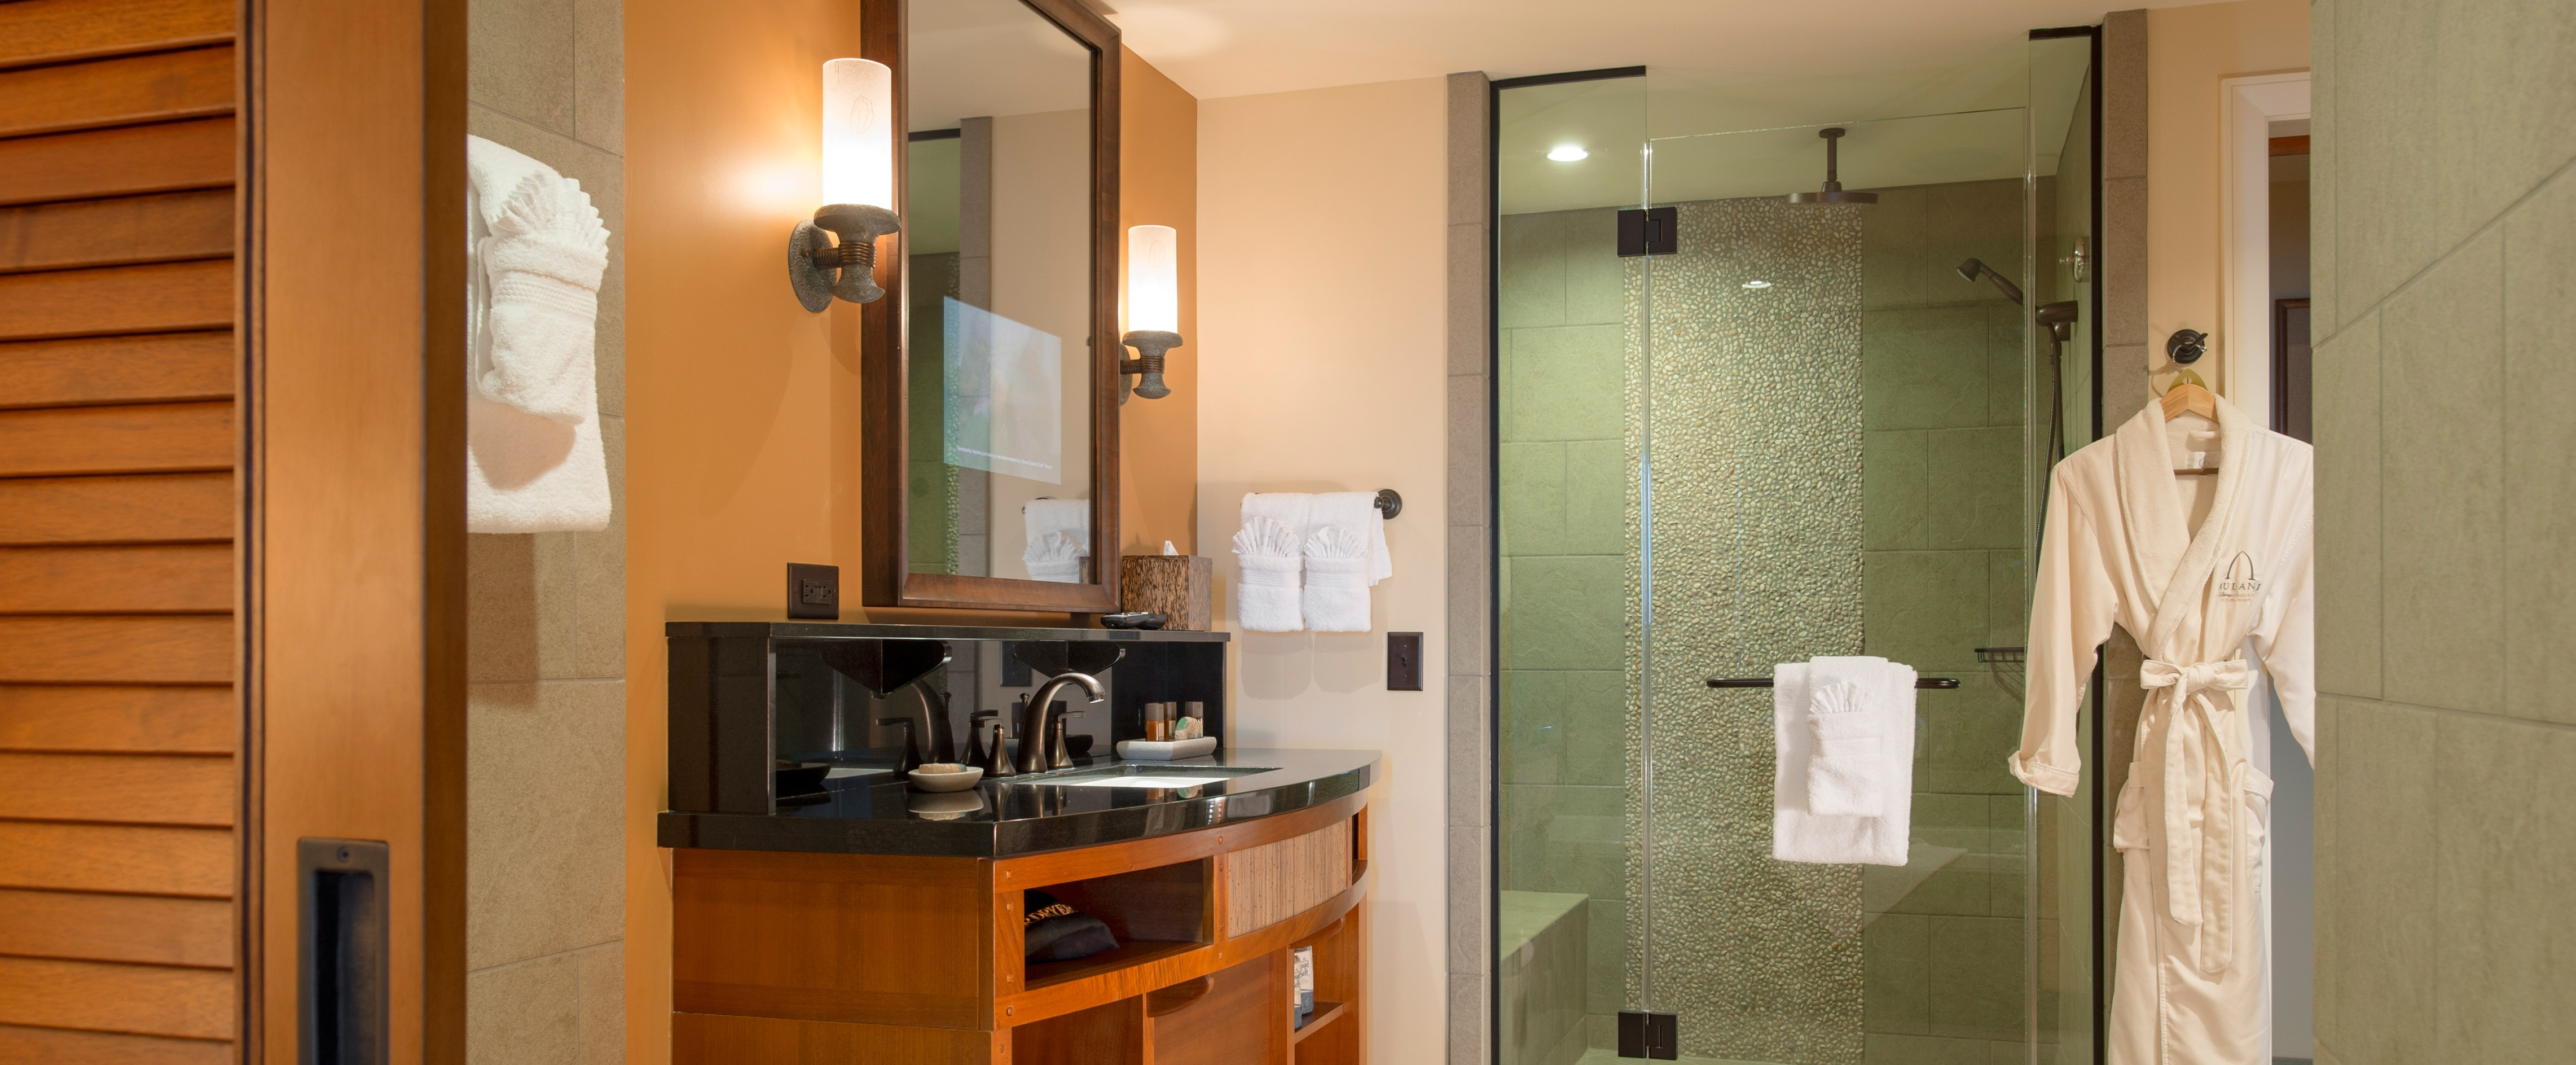 A bathroom with a modern-style vanity, glass-door shower and Aulani terry robe hanging on the wall